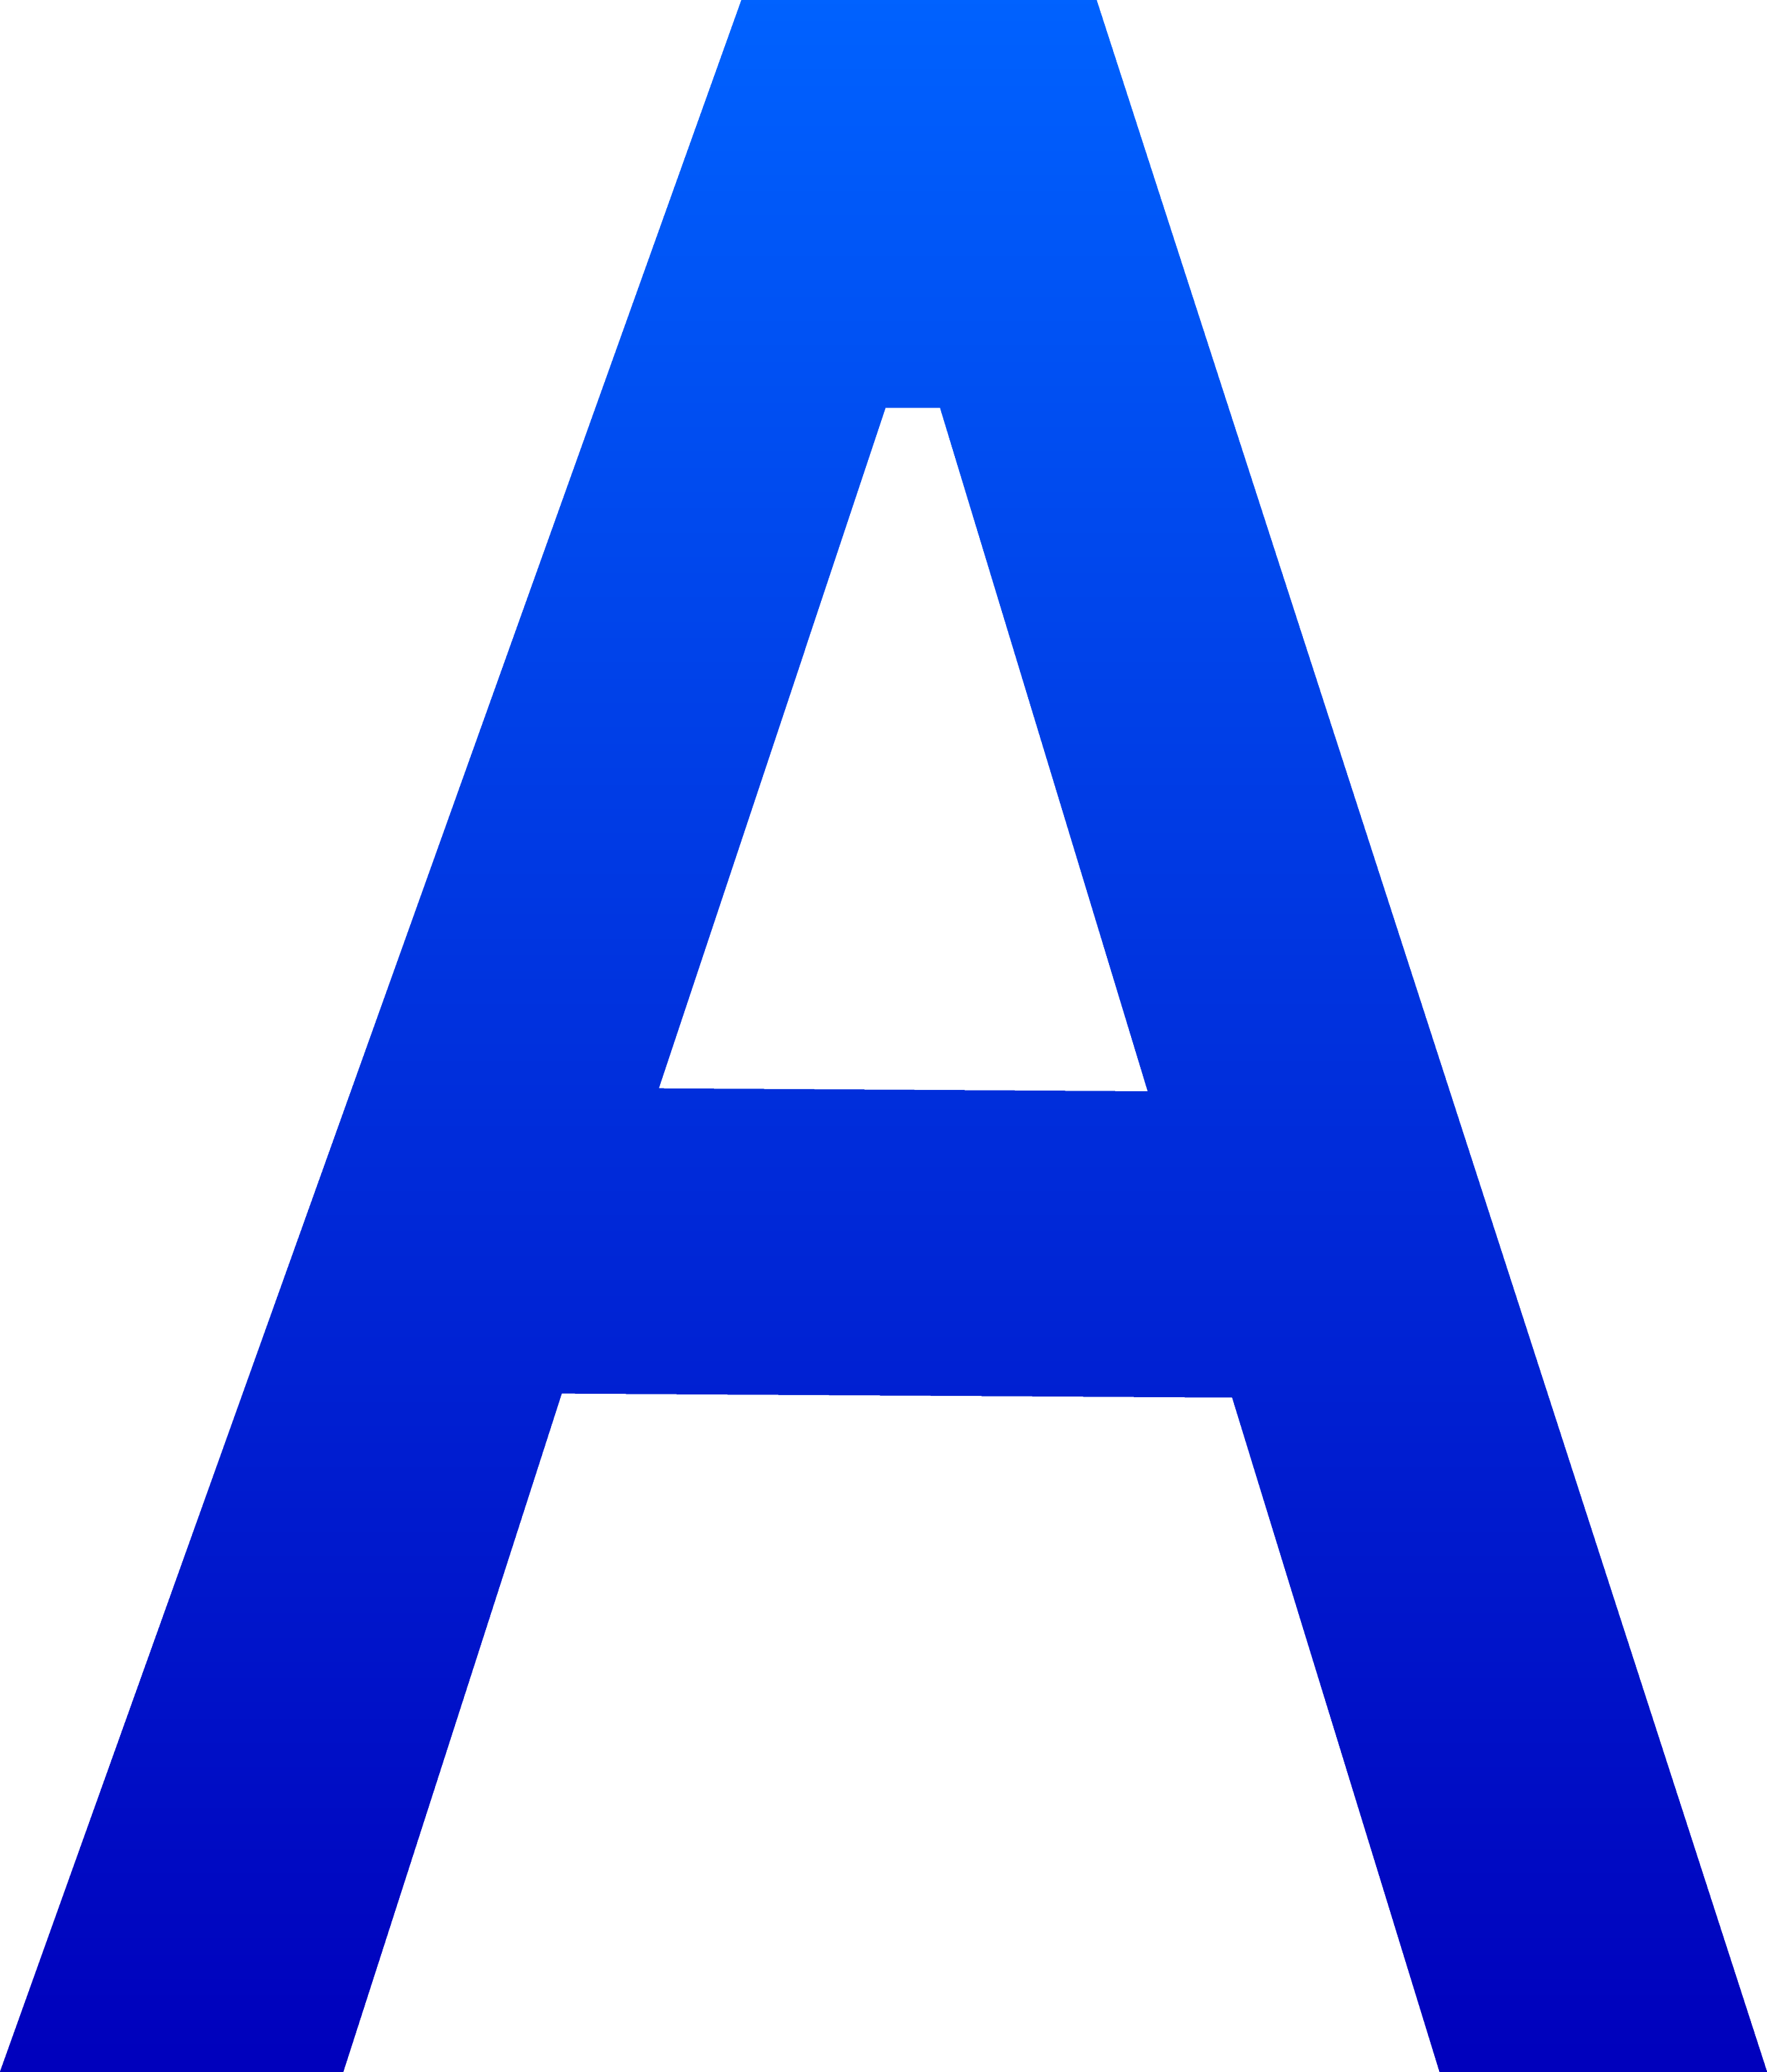 The Letter A Free Clip Art